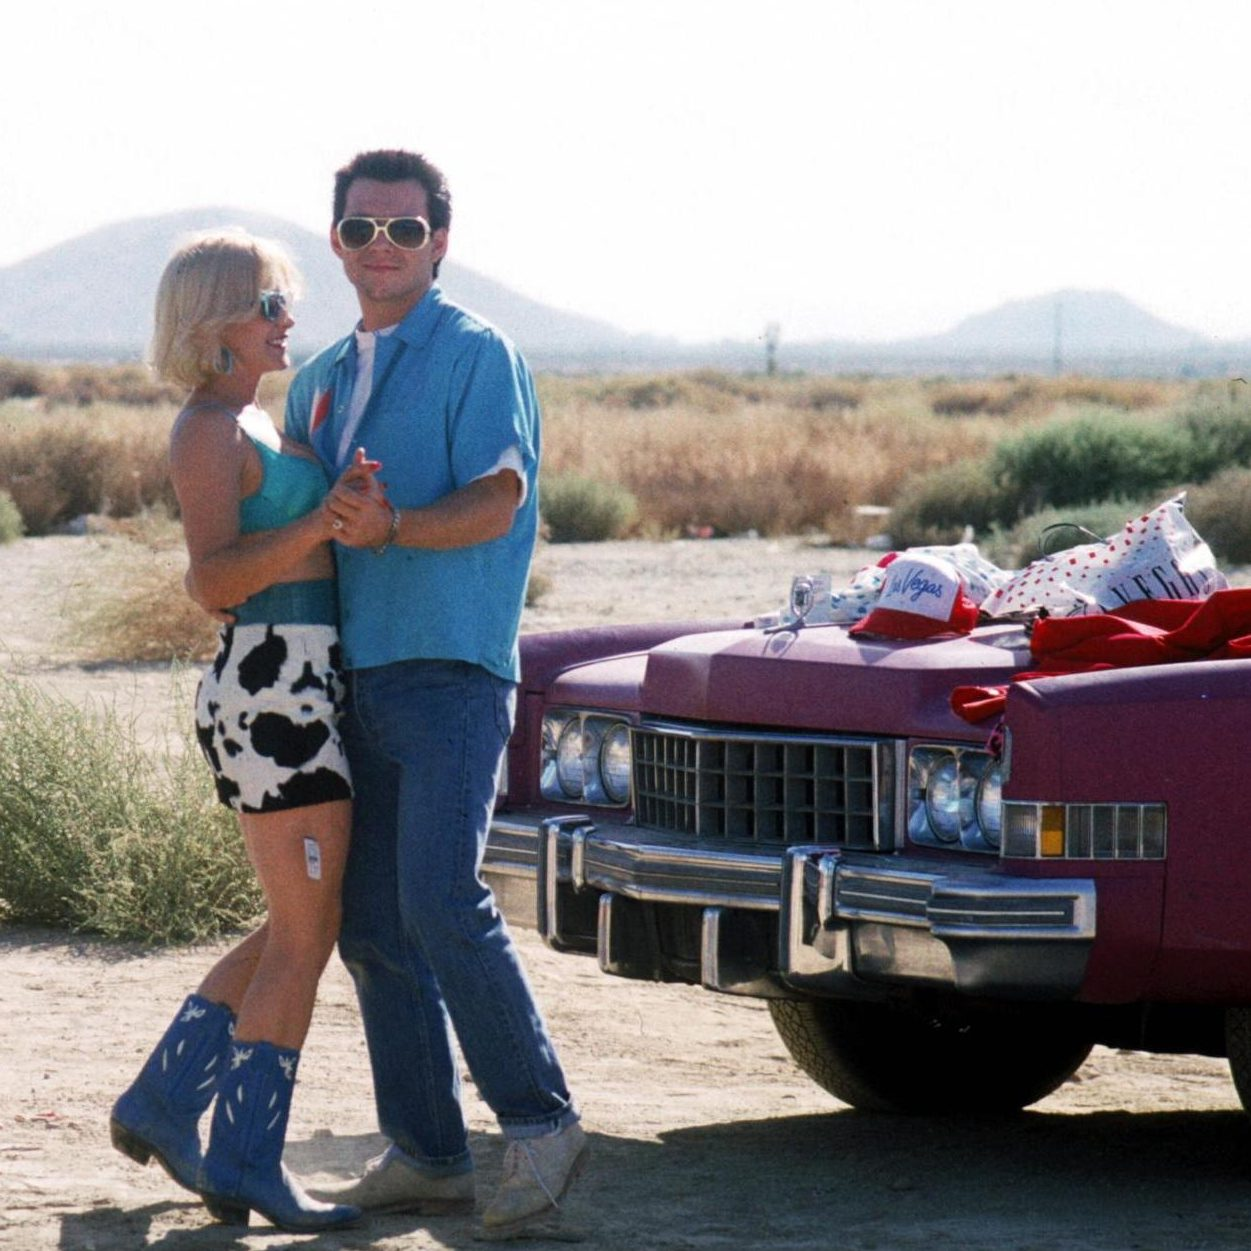 true romance 2 e1600184873806 20 Things You Didn't Know About The Classic Film True Romance